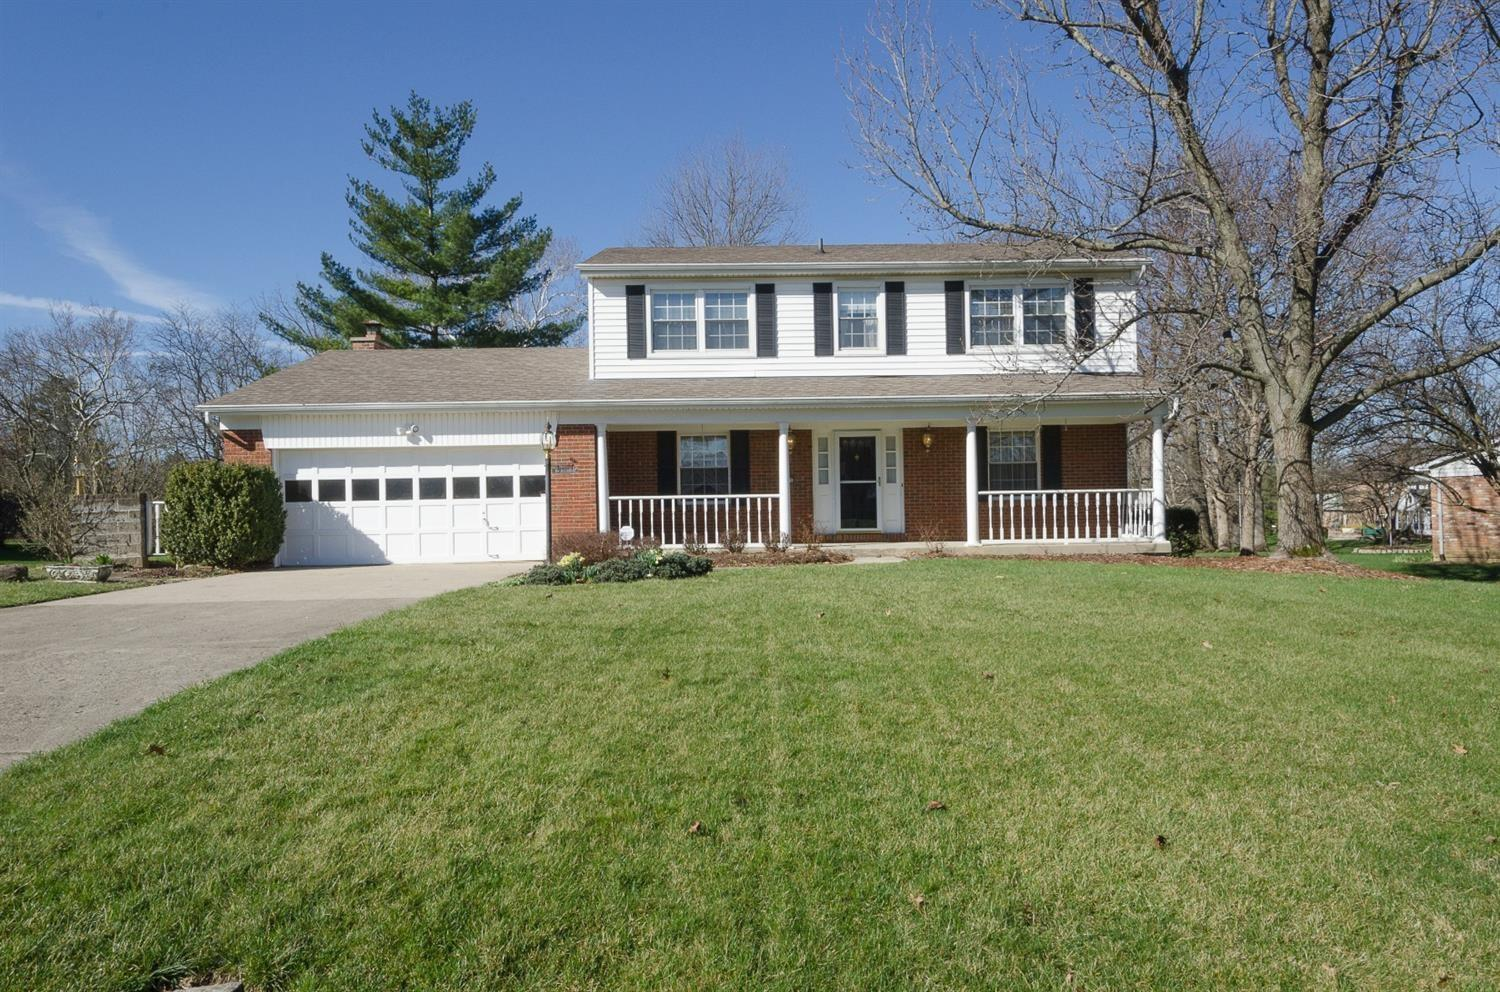 9251 Sunderland Way, West Chester, OH